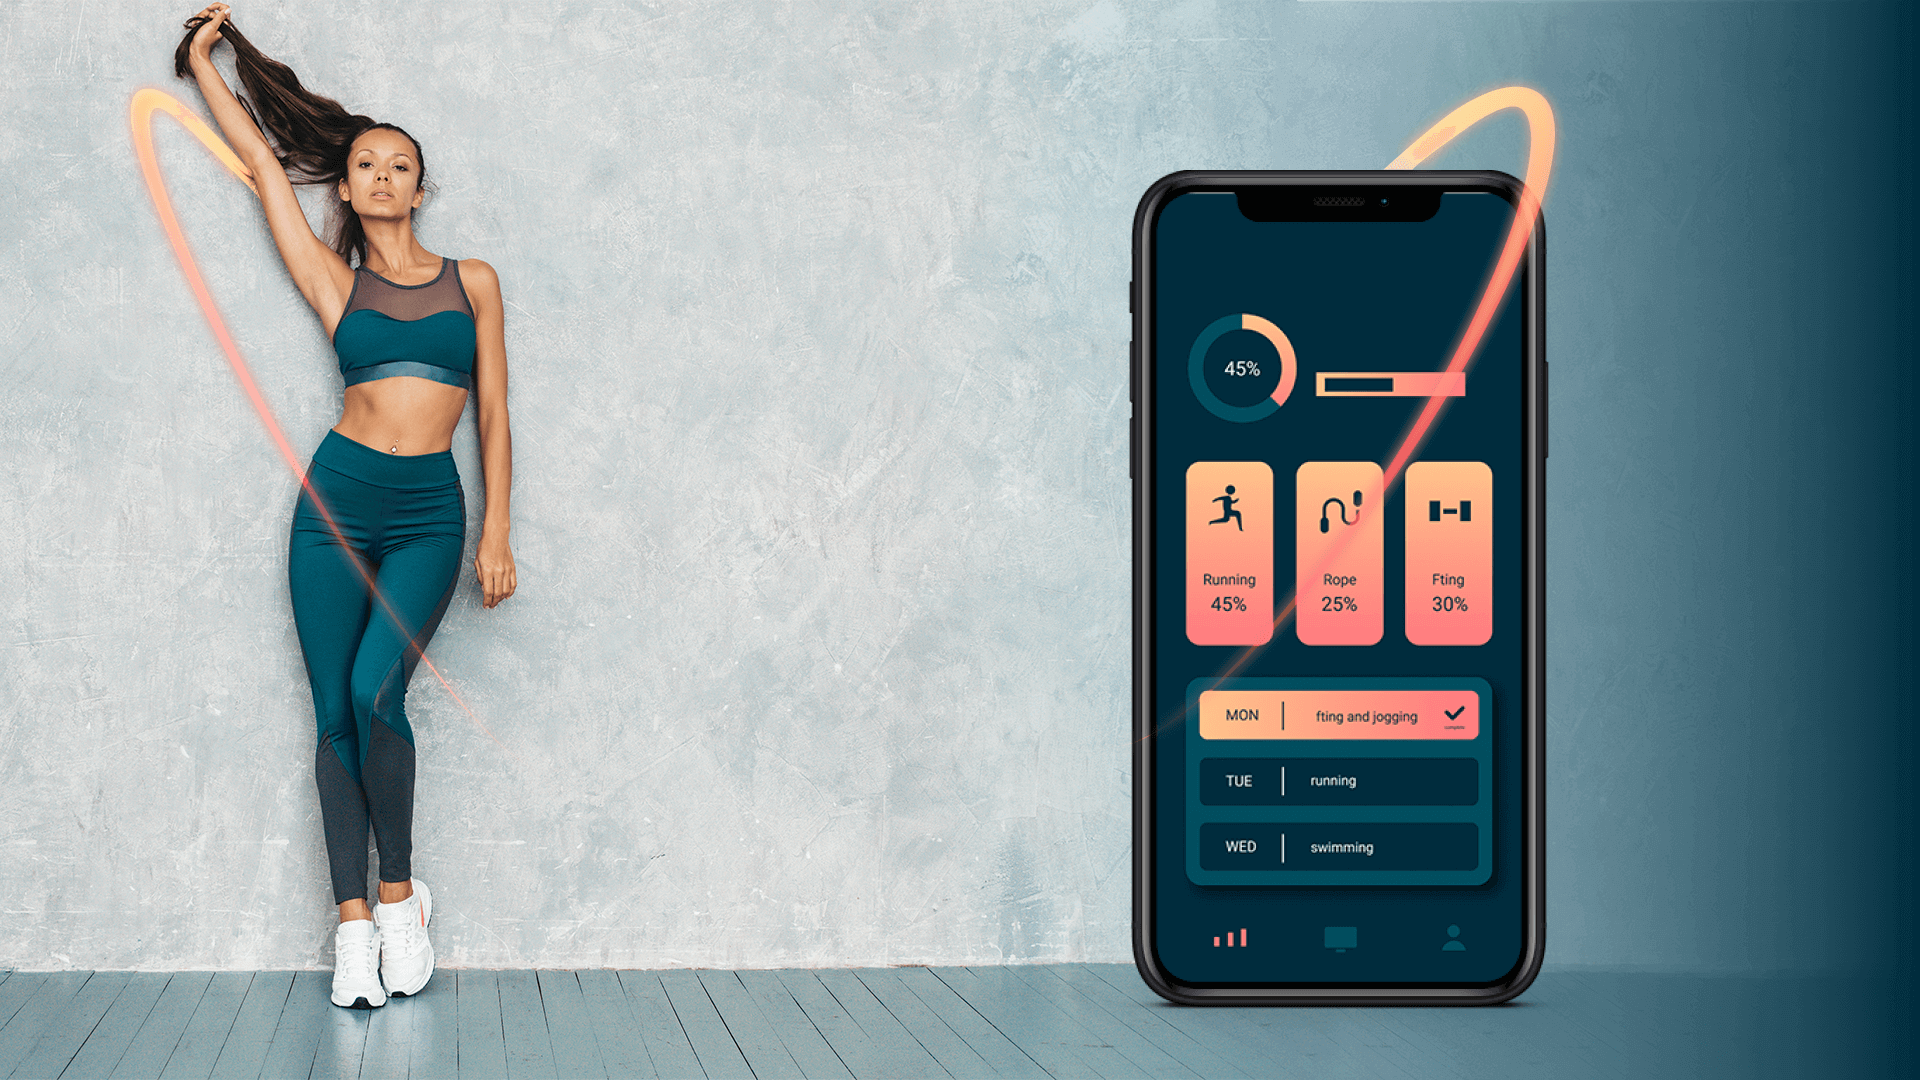 Why the need of Fitness apps is increasing?